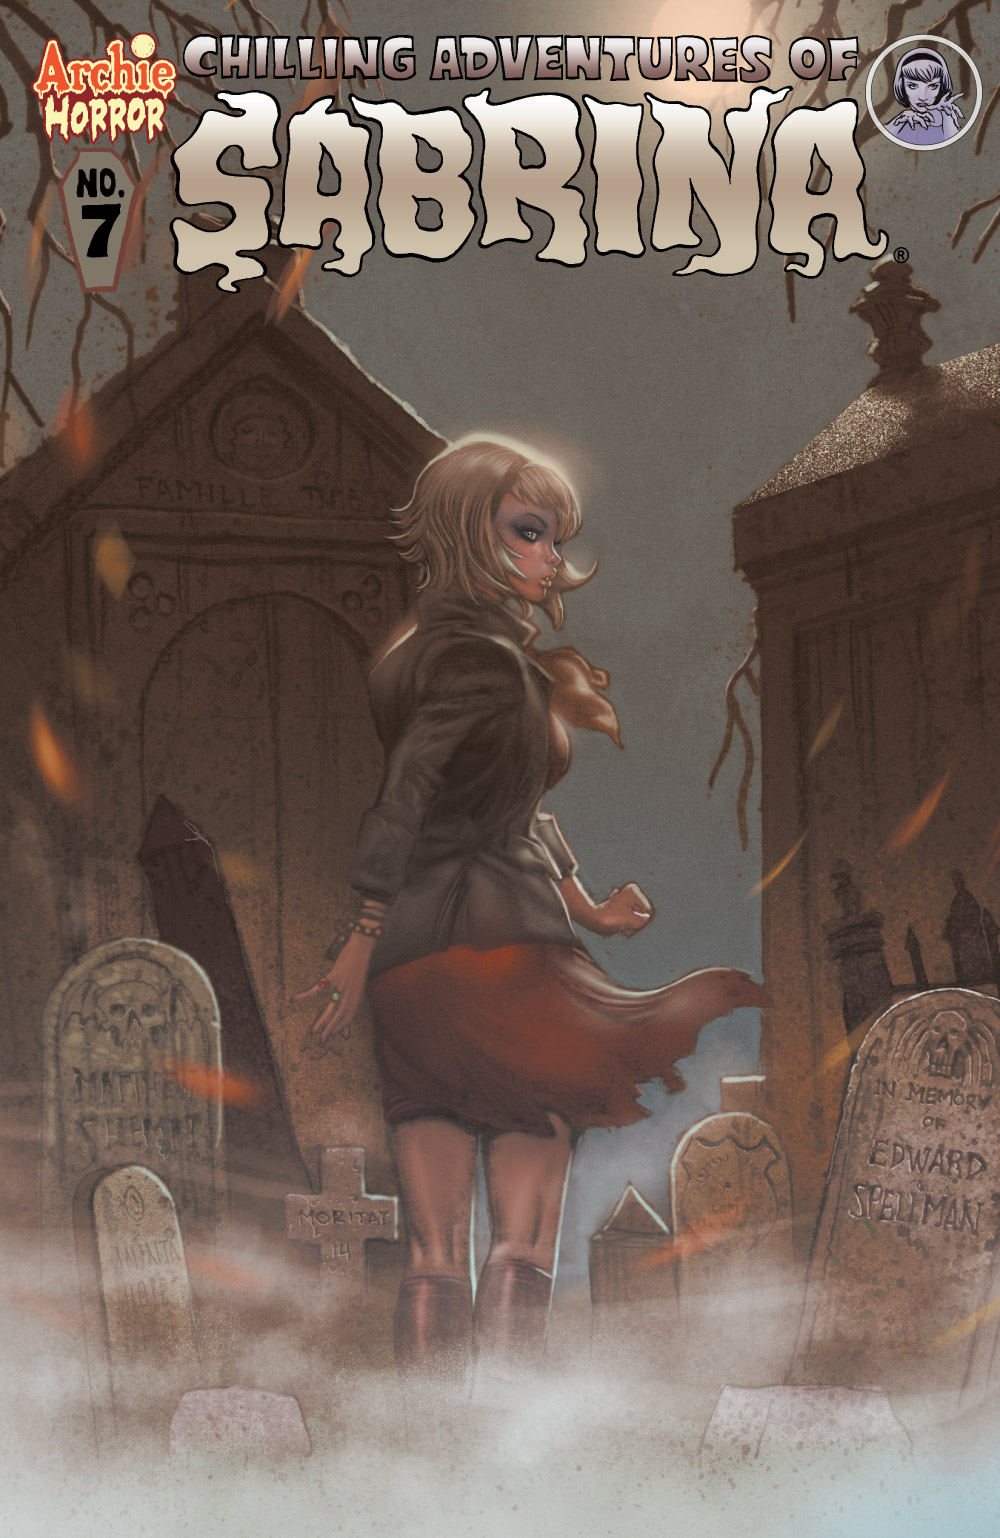 Chilling Adventures Of Sabrina 7 Preview First Comics News